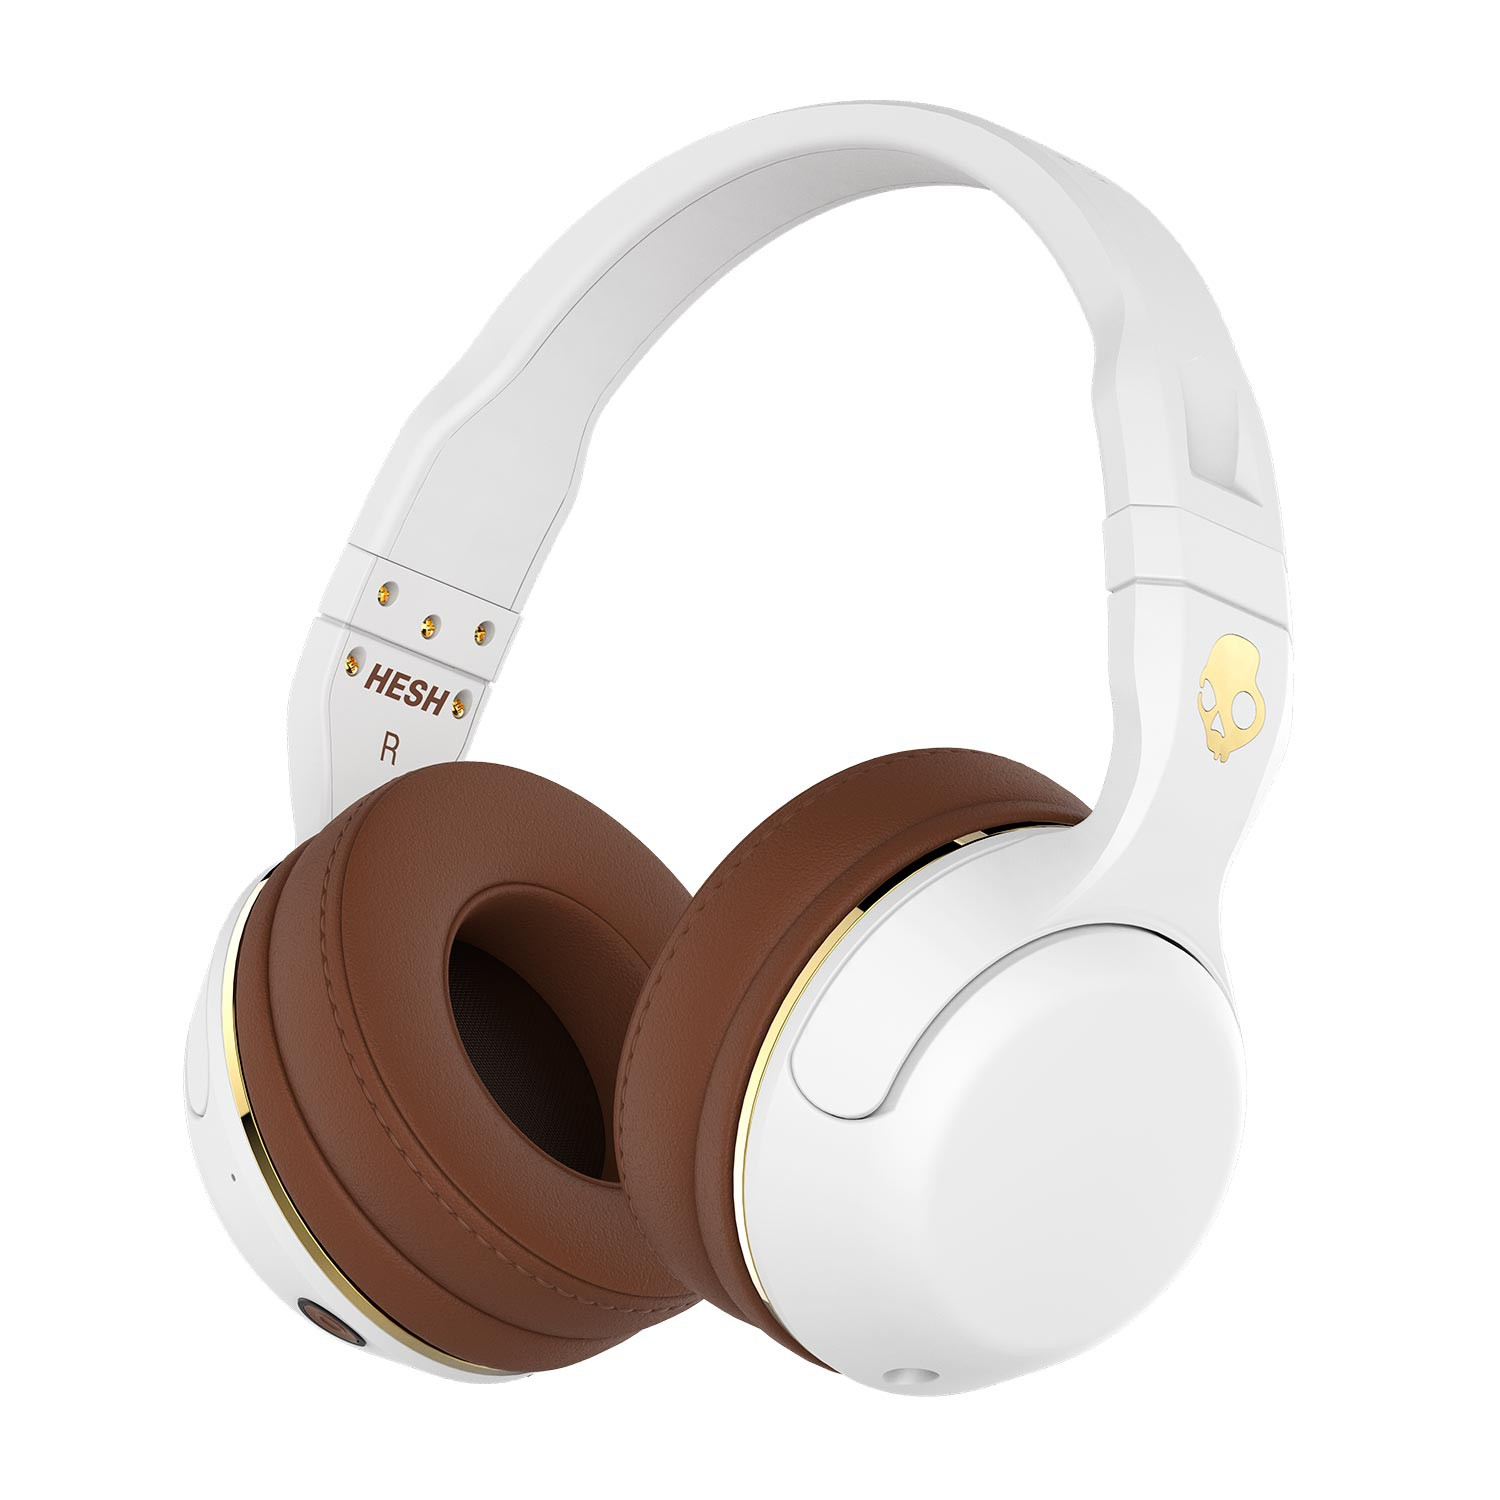 Sluchátka Skullcandy Hesh 2 Wireless white/gold